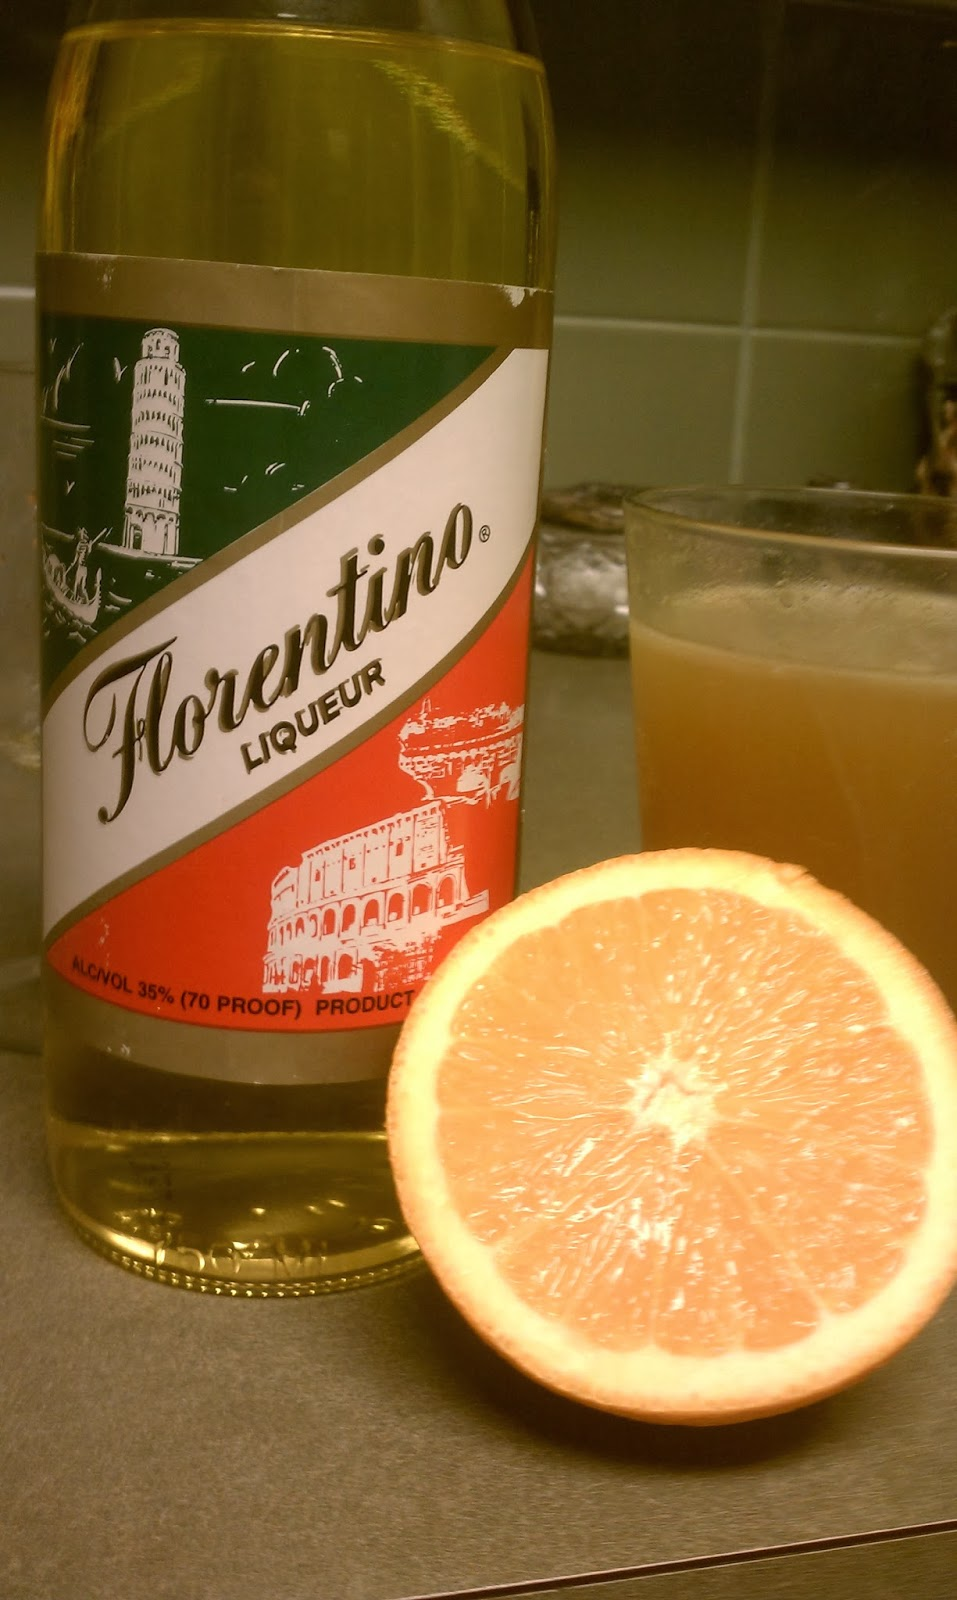 Florention Liqueur with orange juice and beer harvey weissbanger wallbanger variant